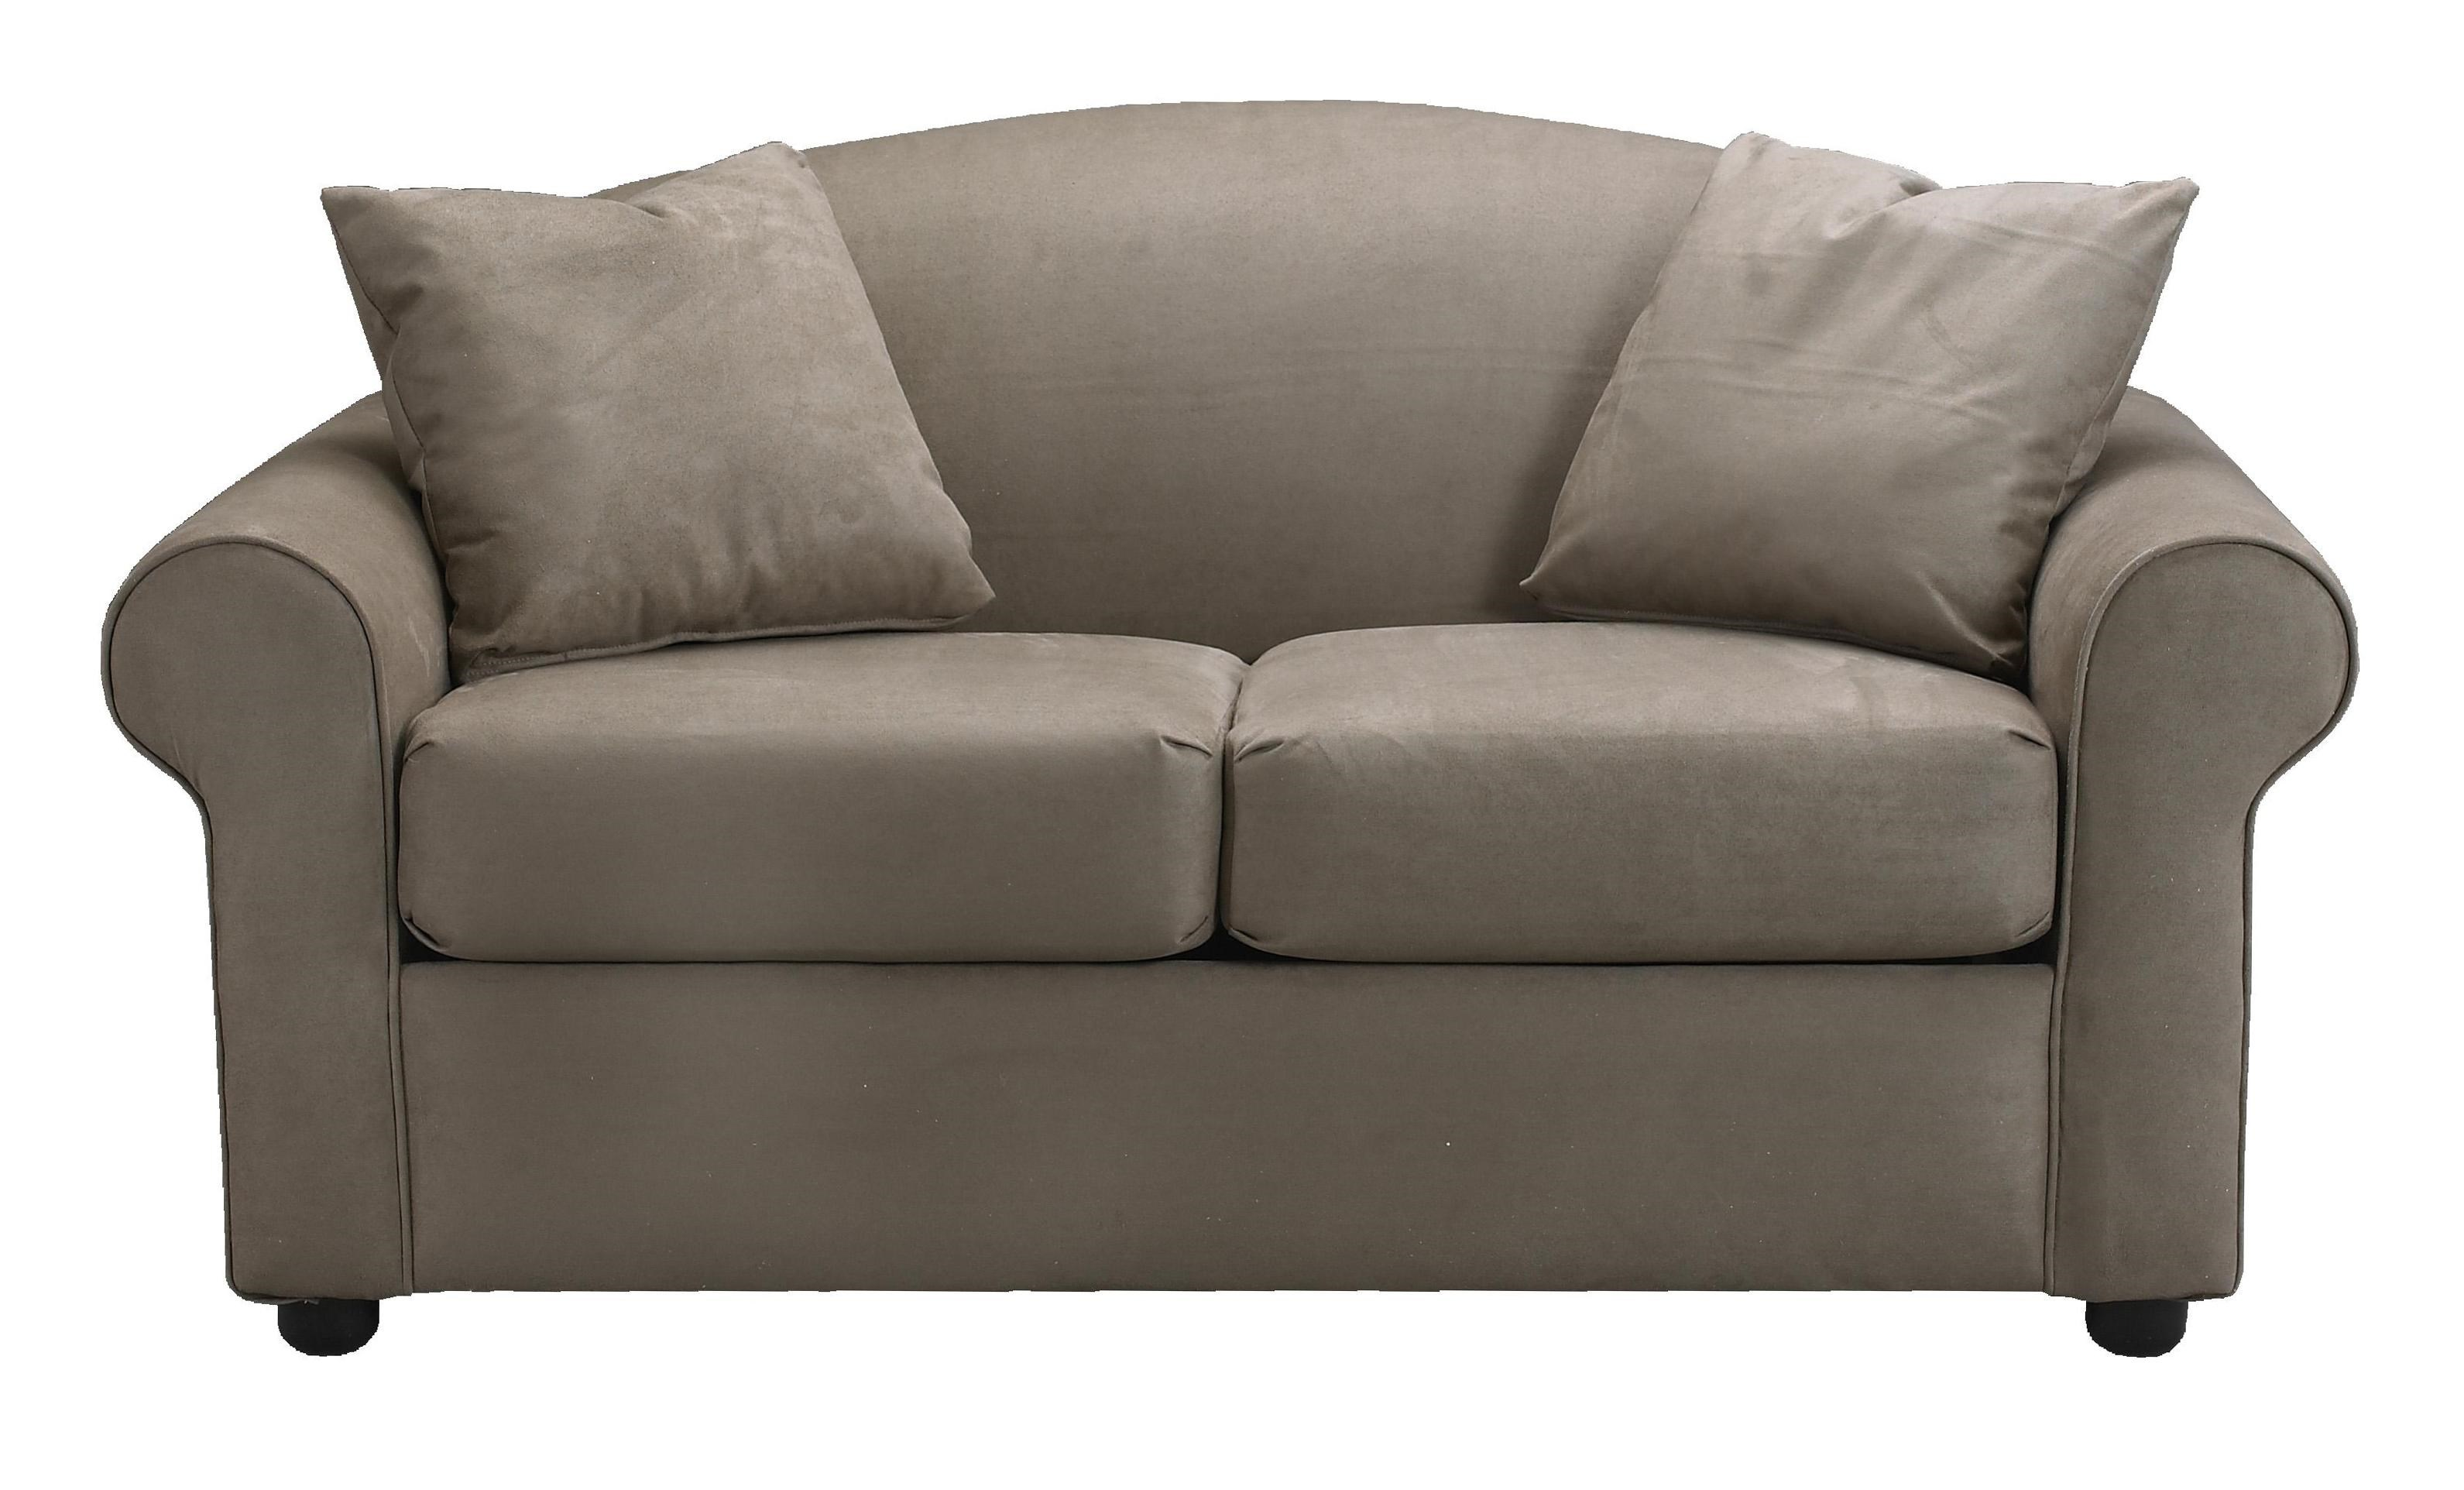 Picture of: Klaussner Possibilities Innerspring Twin Sleeper Loveseat Sheely S Furniture Appliance Sleeper Sofas